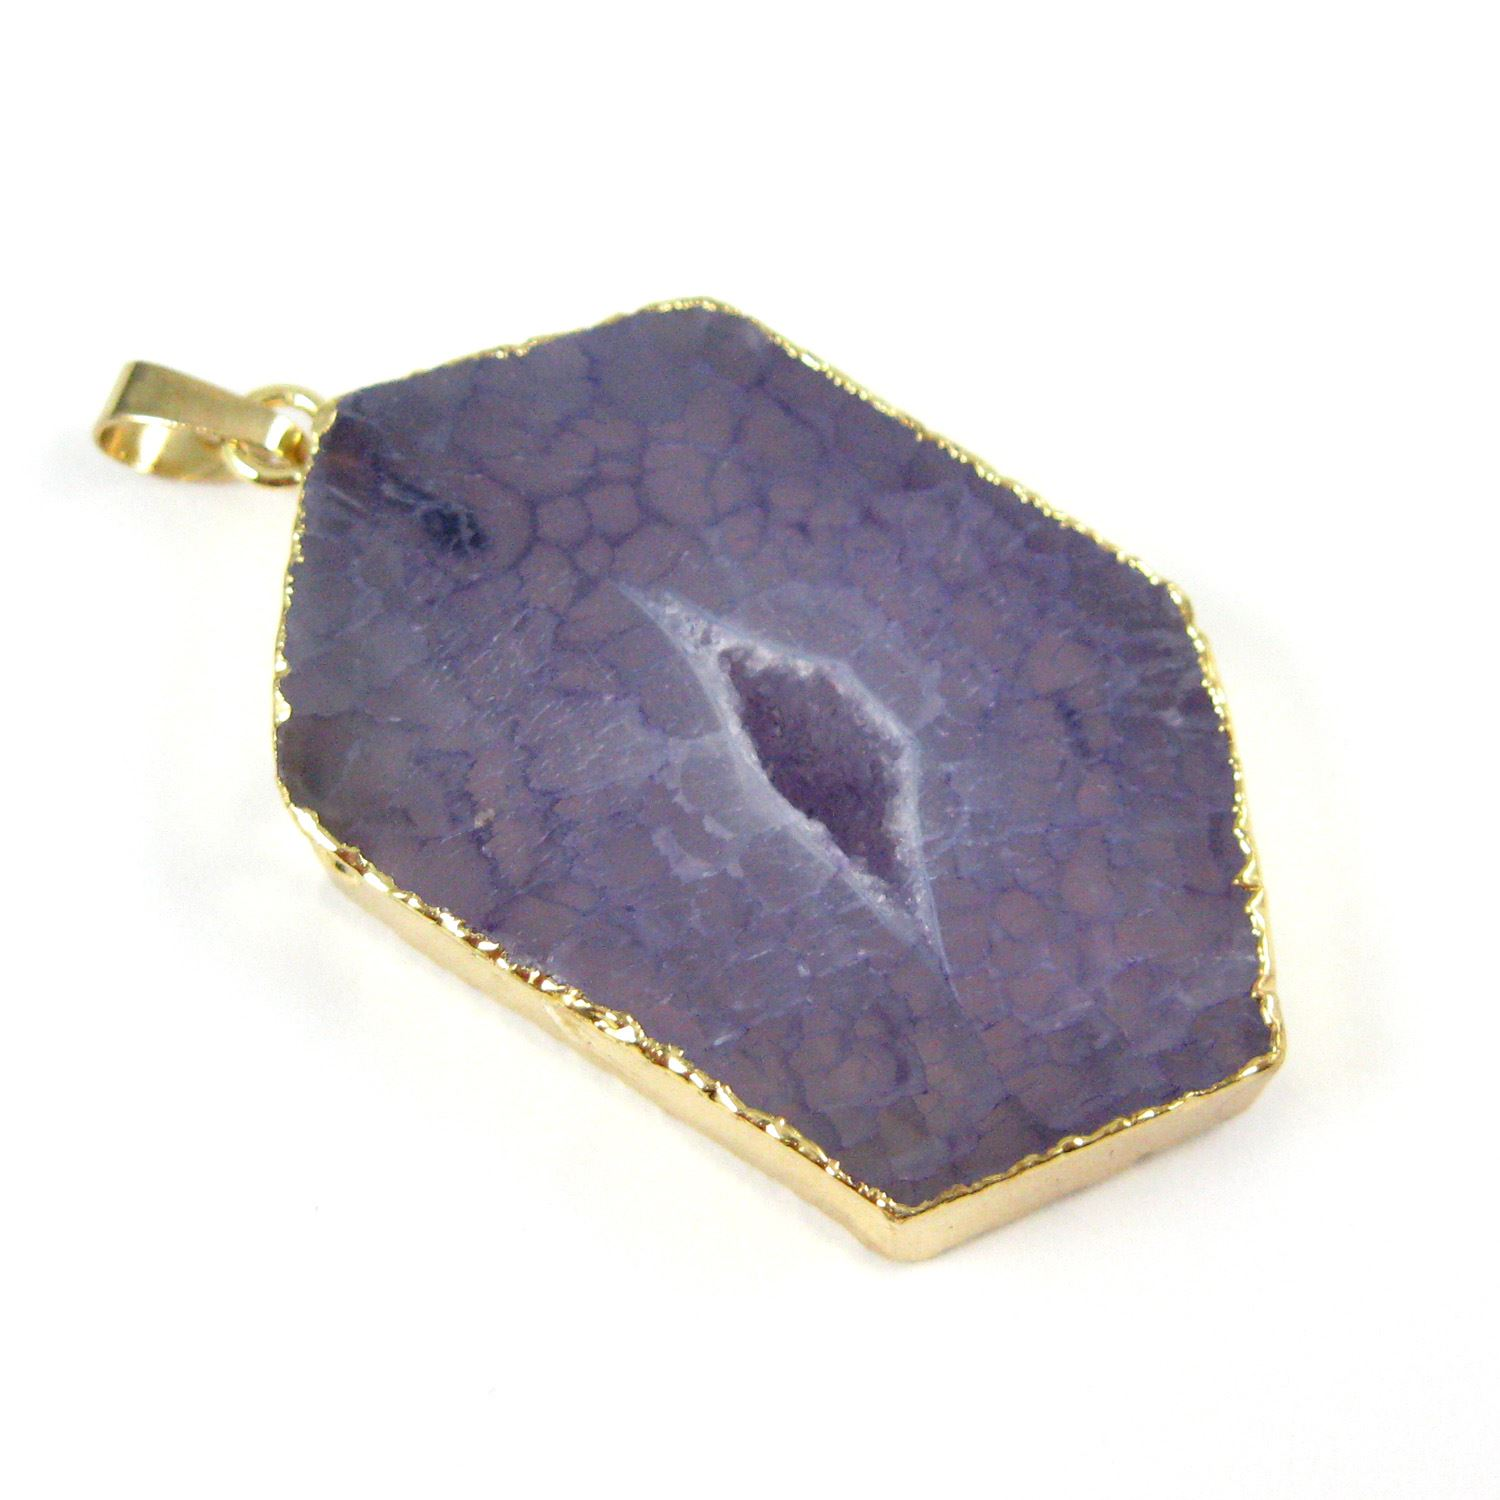 Druzy Geode Hexagon Pendant, Geode Window Agate- Natural Purple Agate 45mm